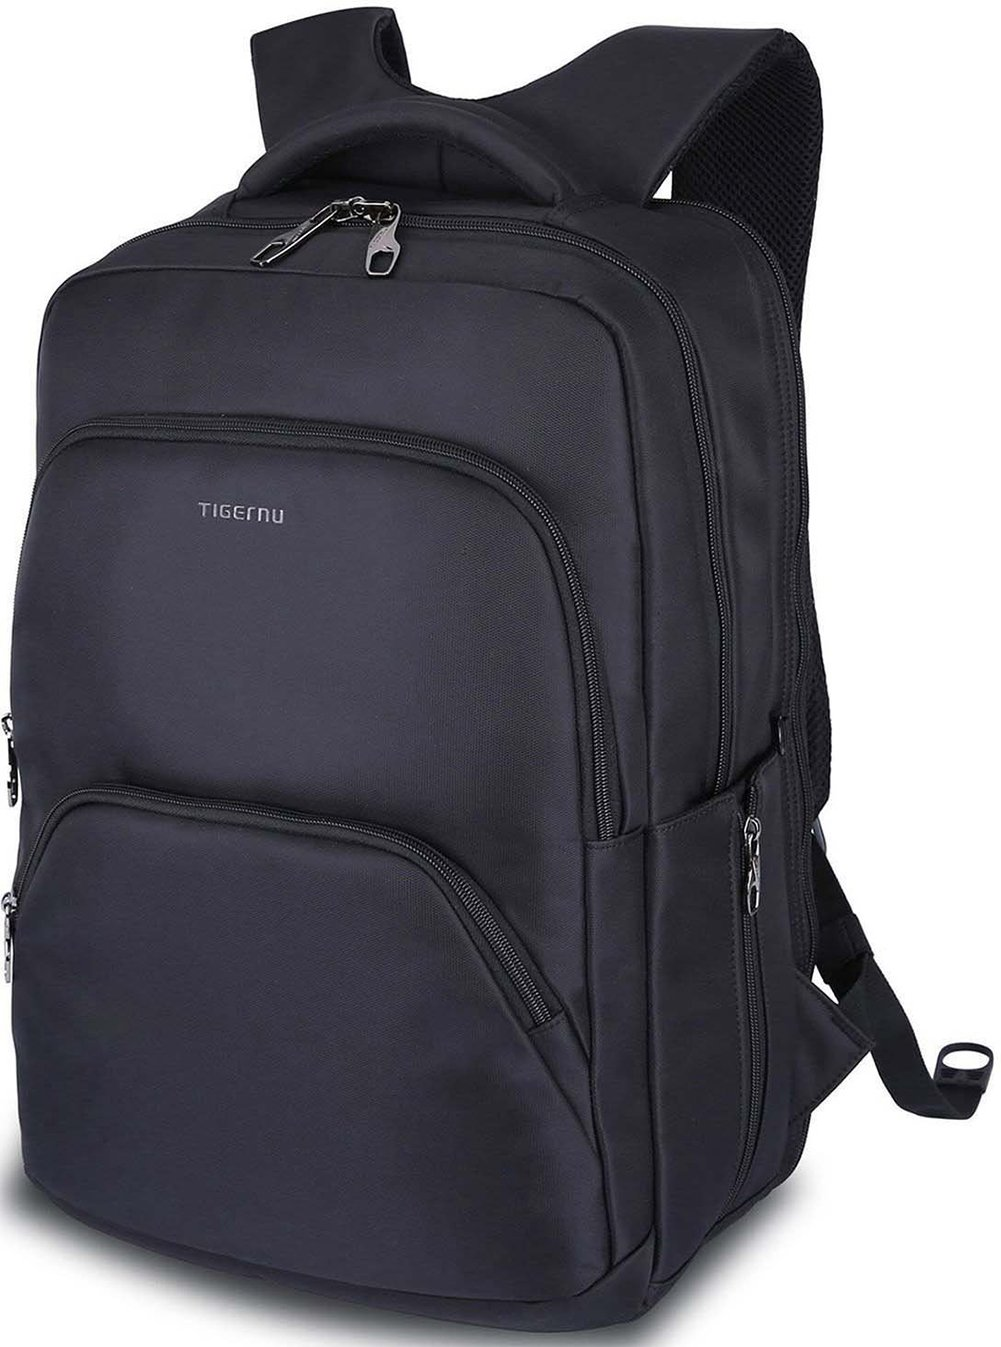 Slim Business Laptop Backpack: Unisex, Advanced Design with Lots of Pockets, Professional Quality, Waterproof, Stylish and Lightweight (Black(TSA)) LAPACKER